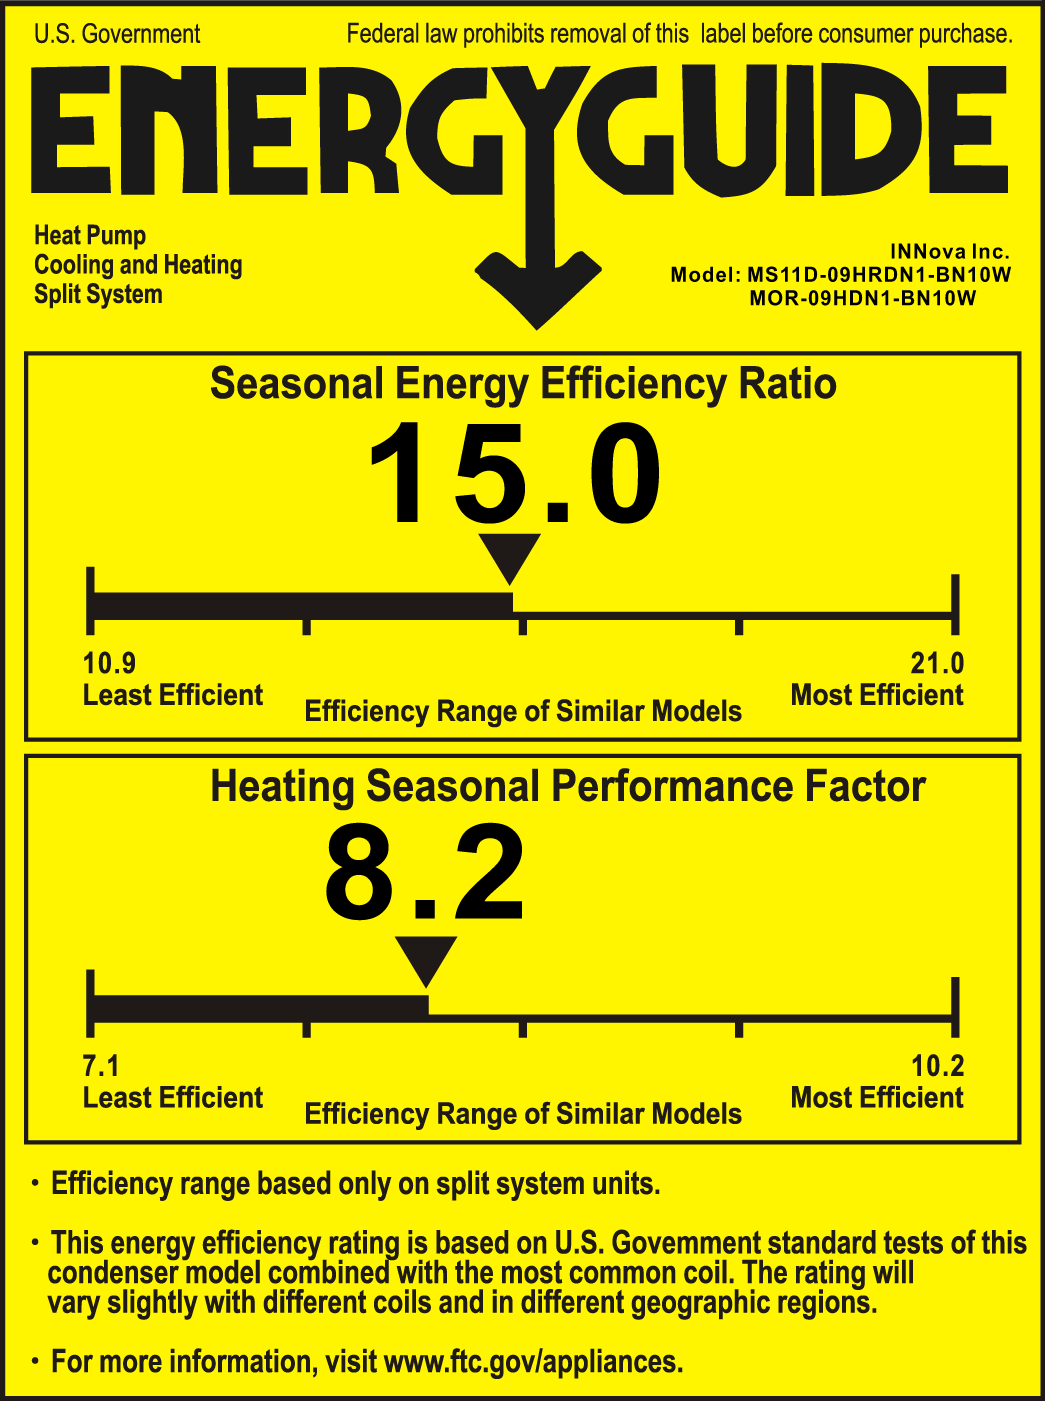 Click here for the 9,000 Innova Inverter A/C energy guide